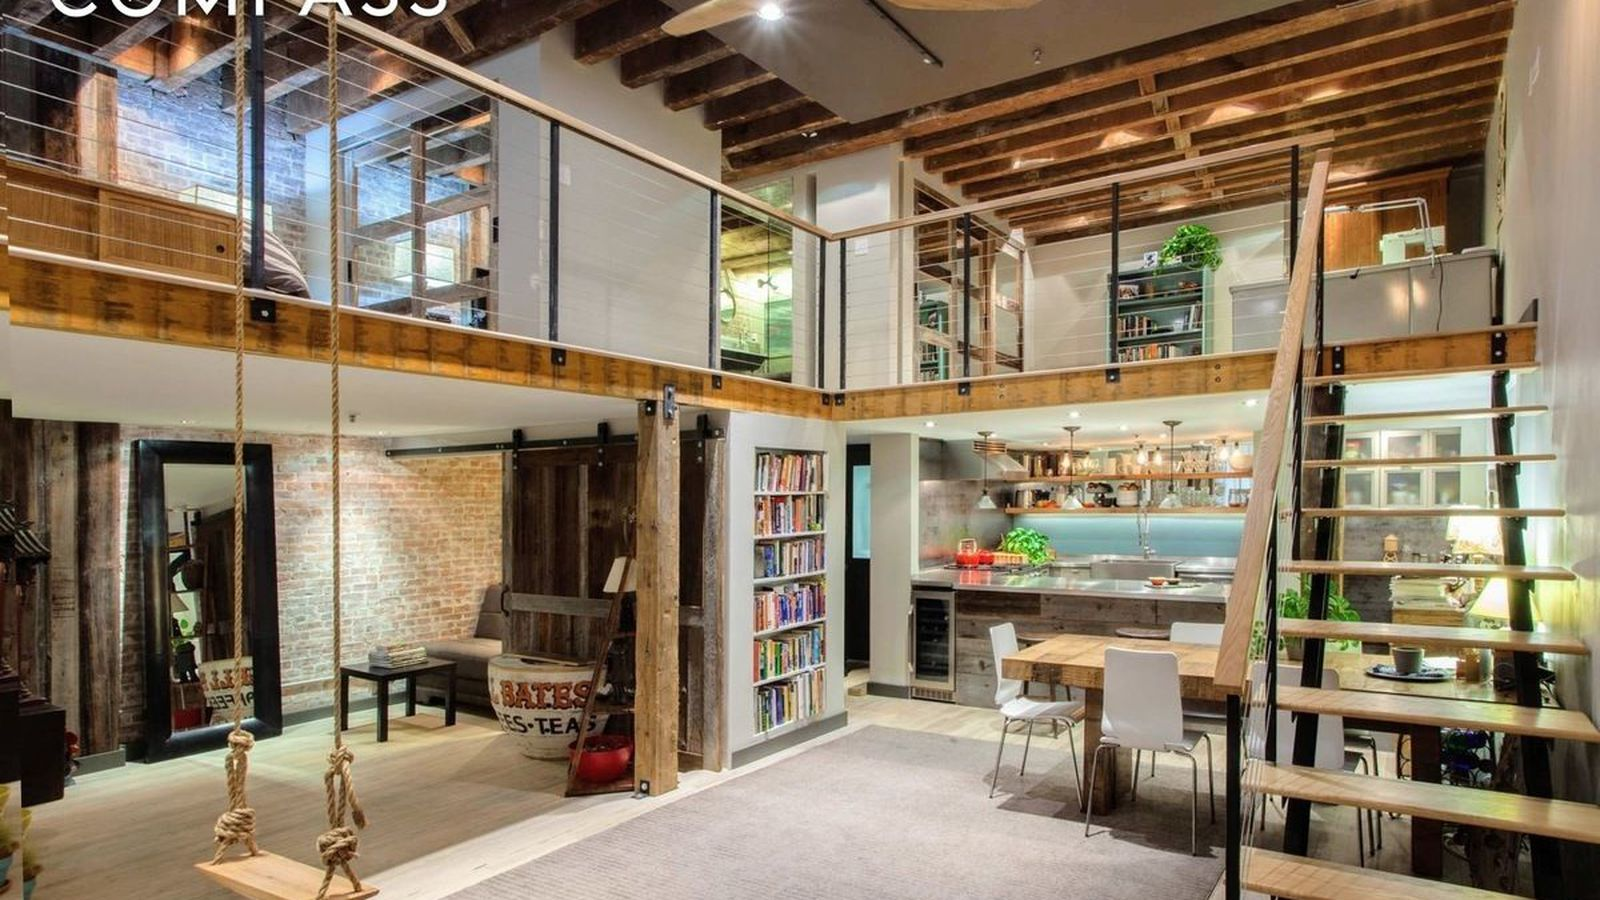 Renovated tribeca loft with rustic touches wants for Tribeca homes for sale